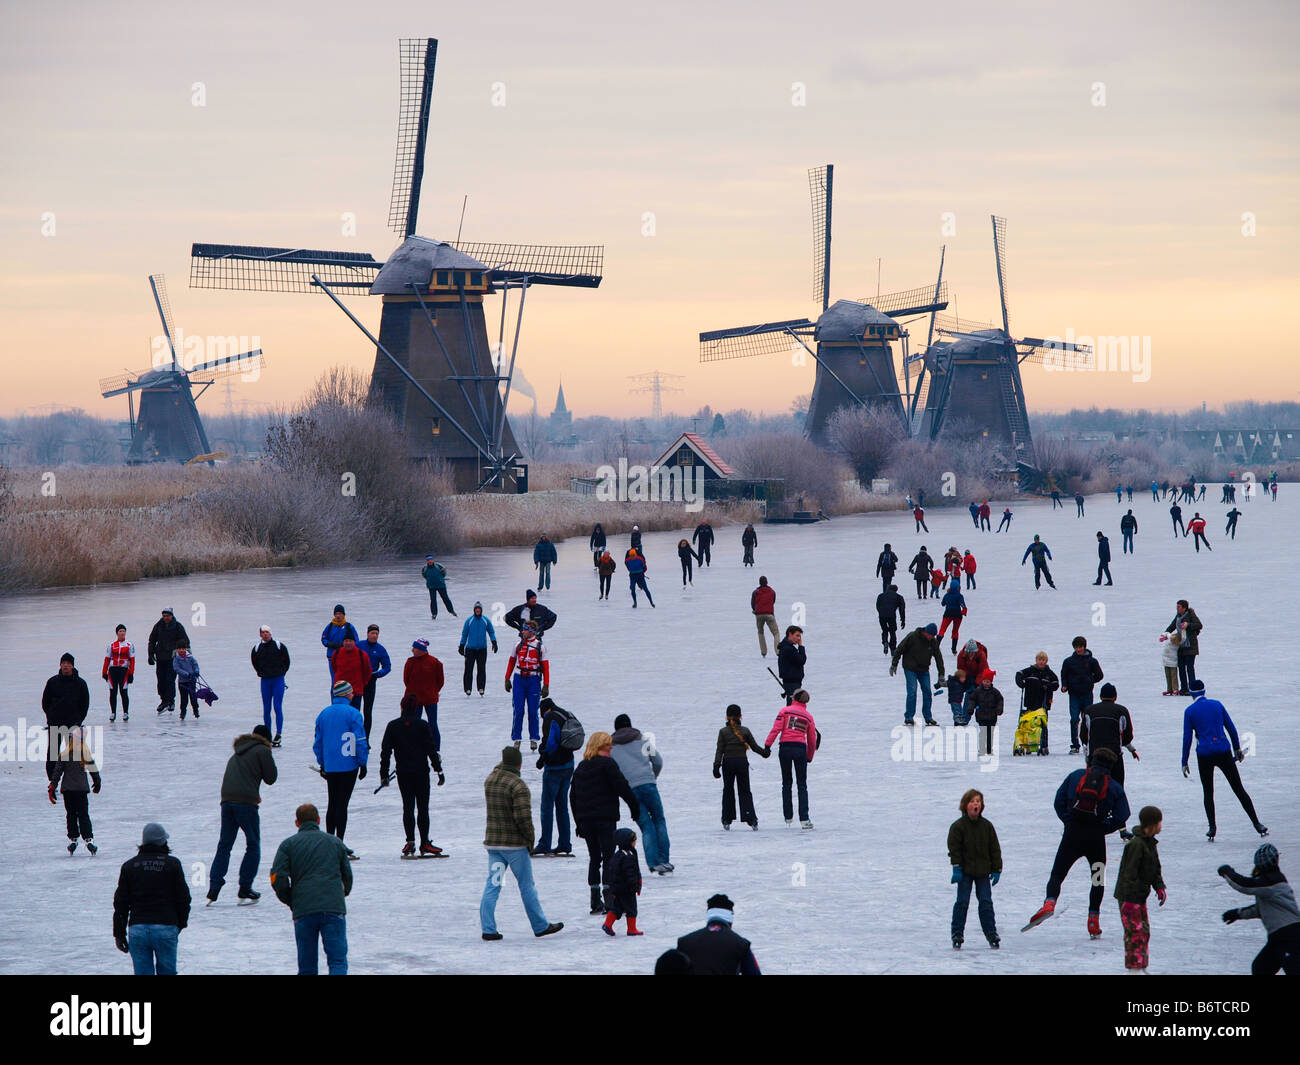 Winter in Holland many people skating on natural ice Kinderdijk windmills the Netherlands Stock Photo